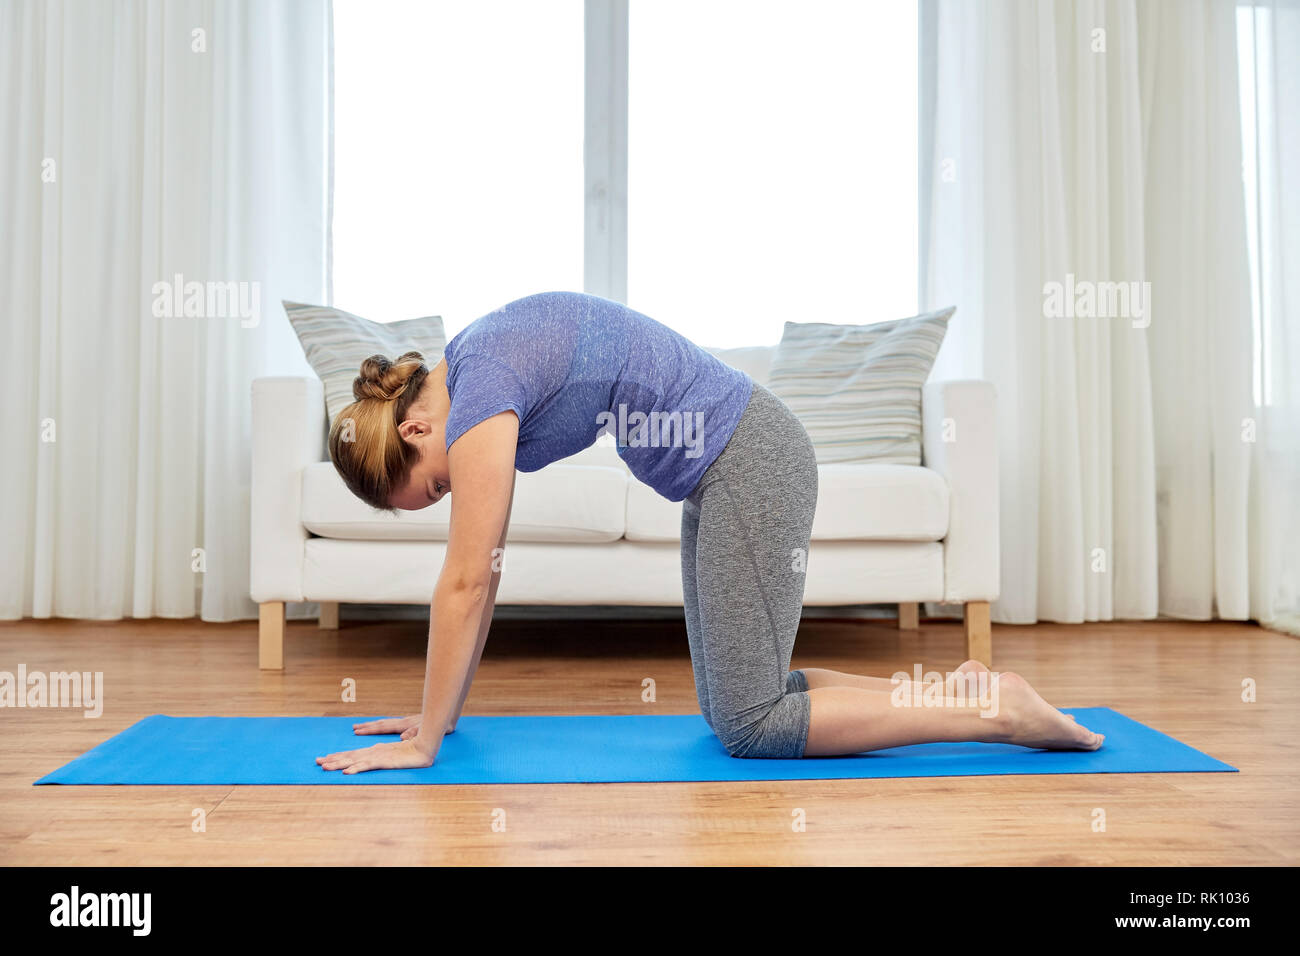 woman doing yoga cat pose at home - Stock Image